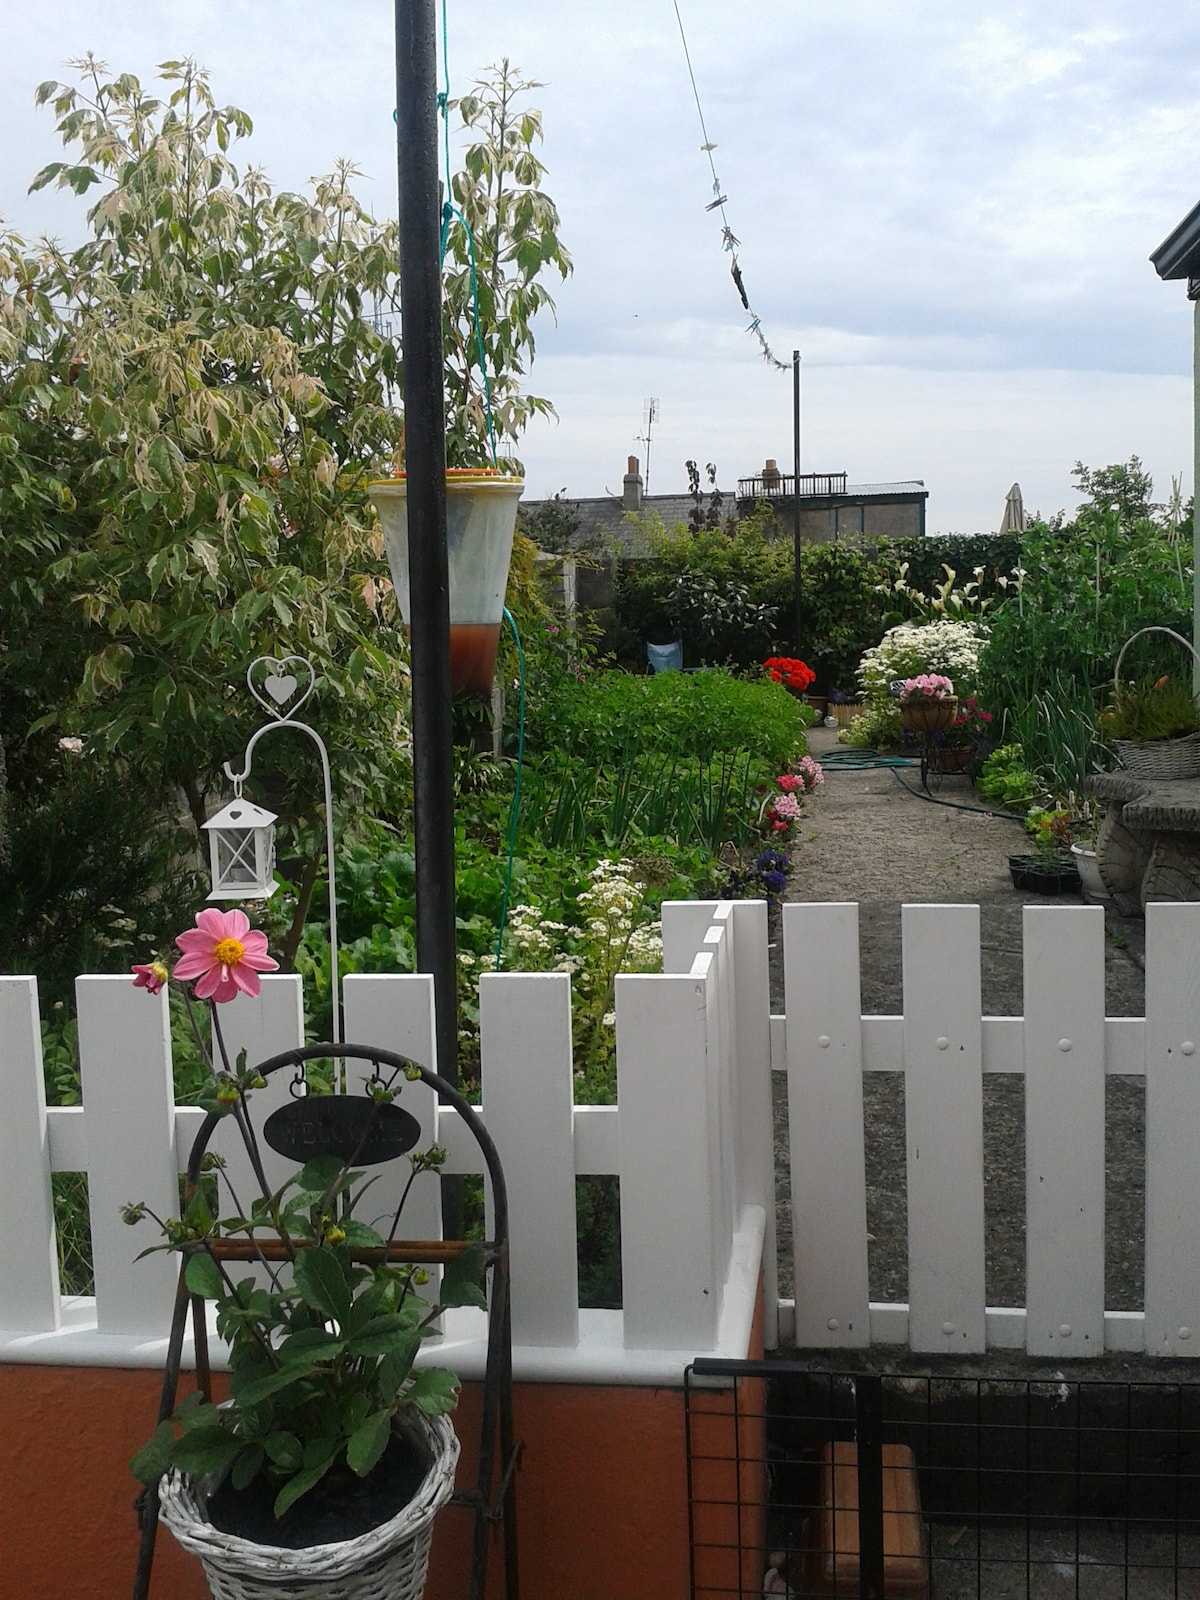 I grow a mix of vegetables and flowers in my small urban garden